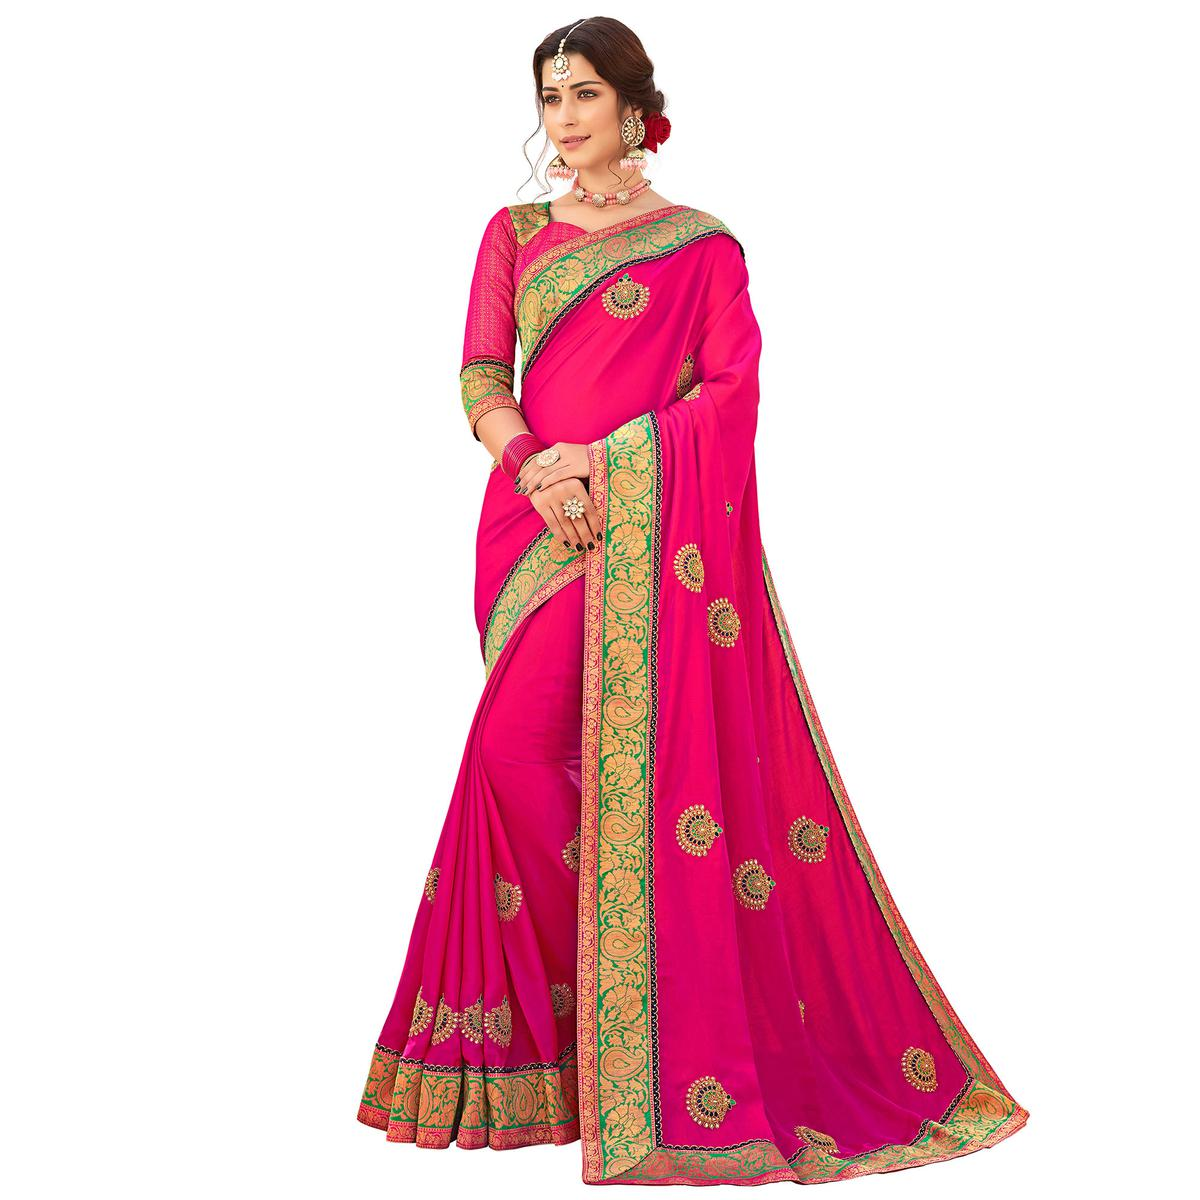 Radiant Pink Colored Partywear Embroidered Satin Silk Saree